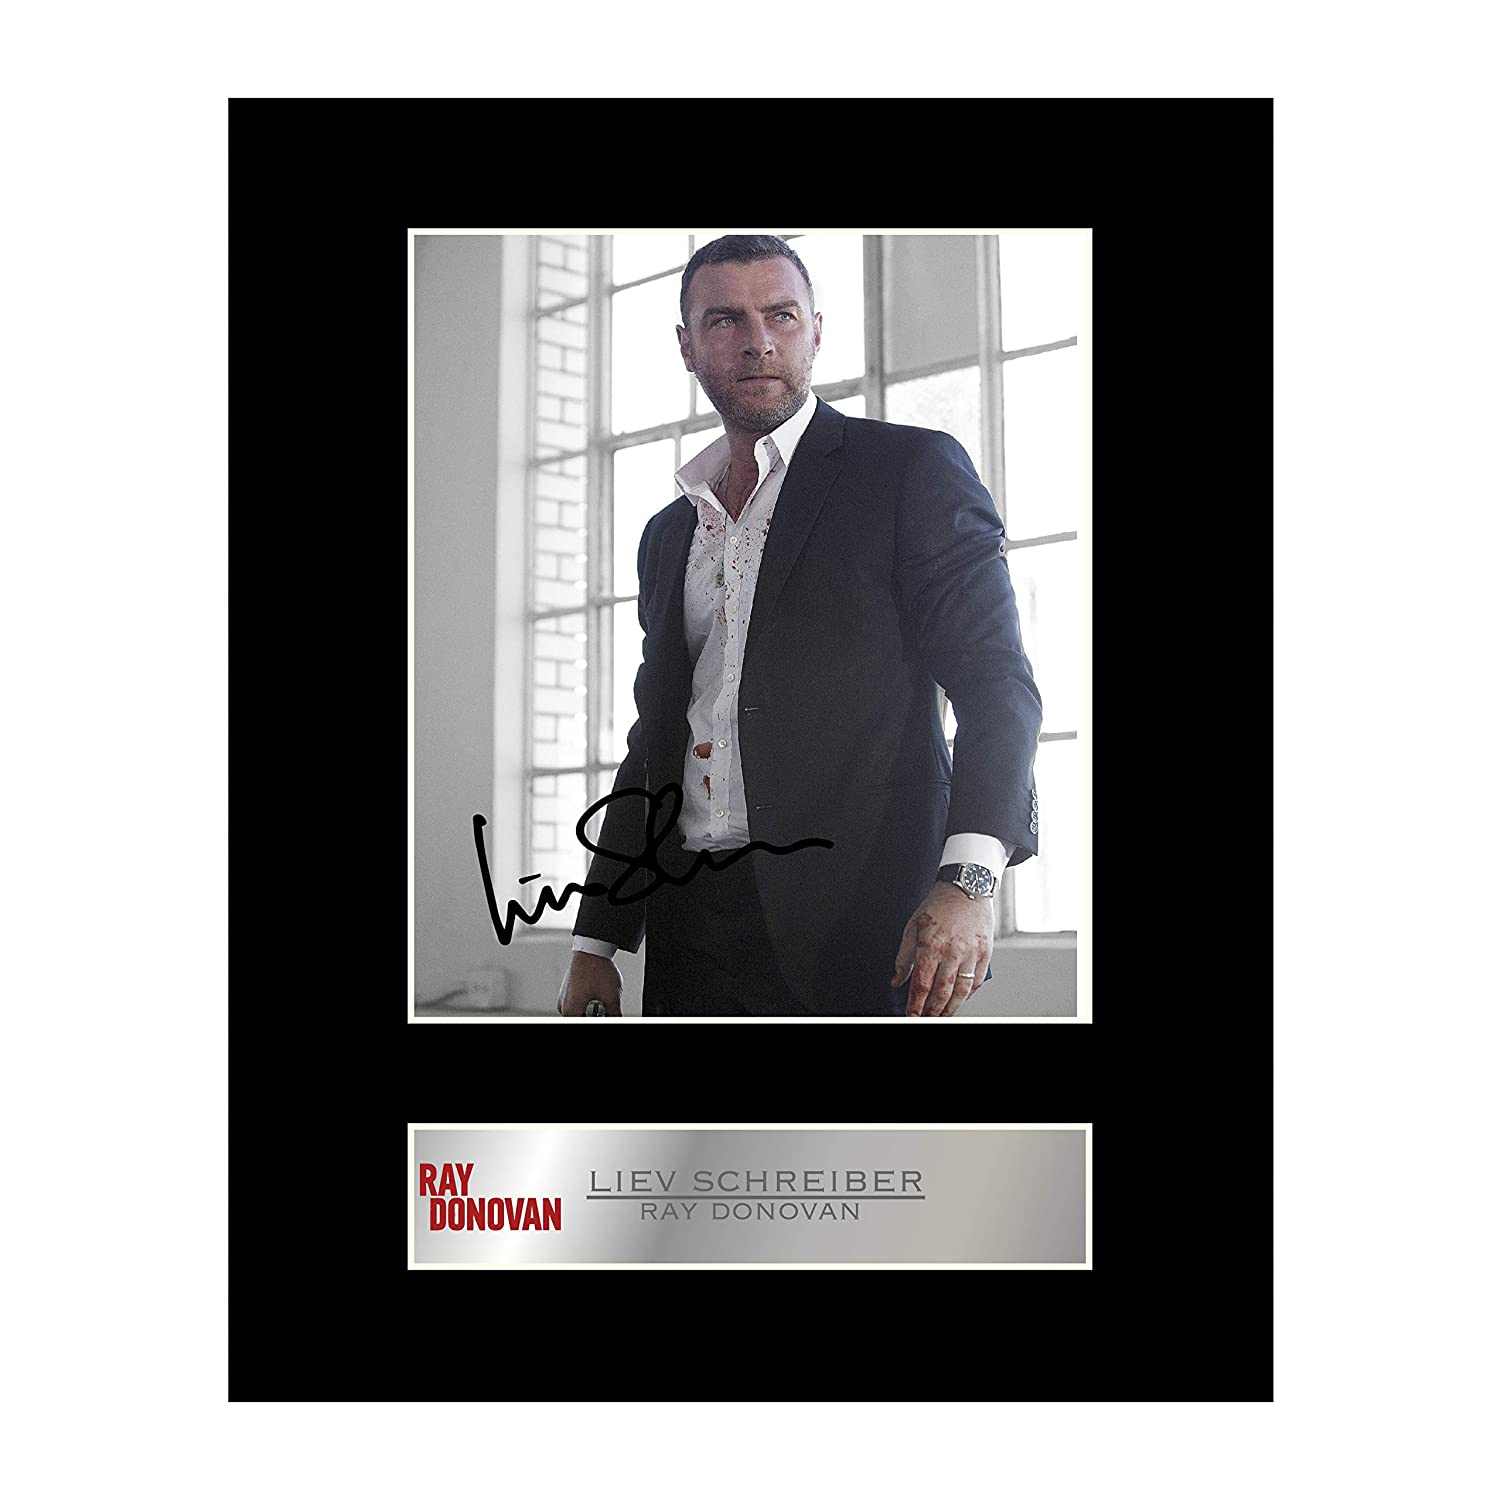 Liev Schreiber, Ray Donovan Signed Mounted Photo Display Ray Donovan #2 Autographed Gift Picture Print Iconic pics